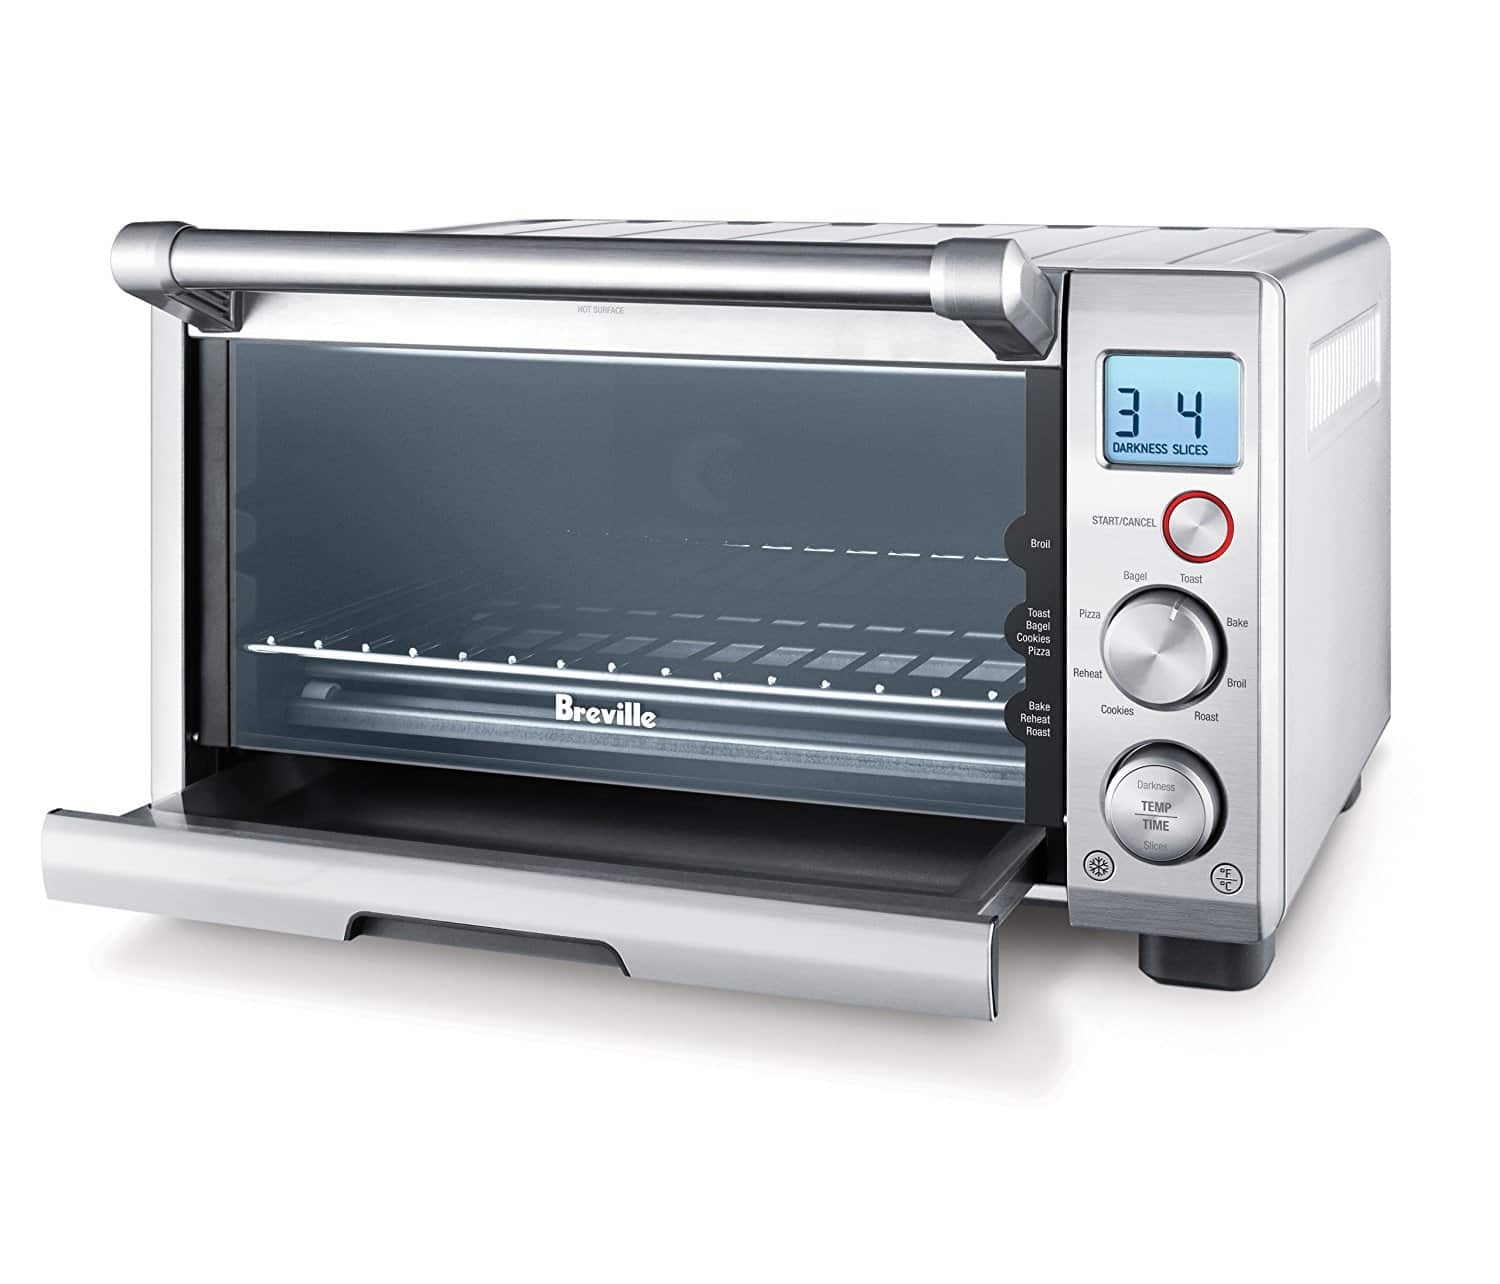 Breville BOV650XL toaster oven marked down plus 20% coupon total $119 + tax @ BBB - B&M YMMV